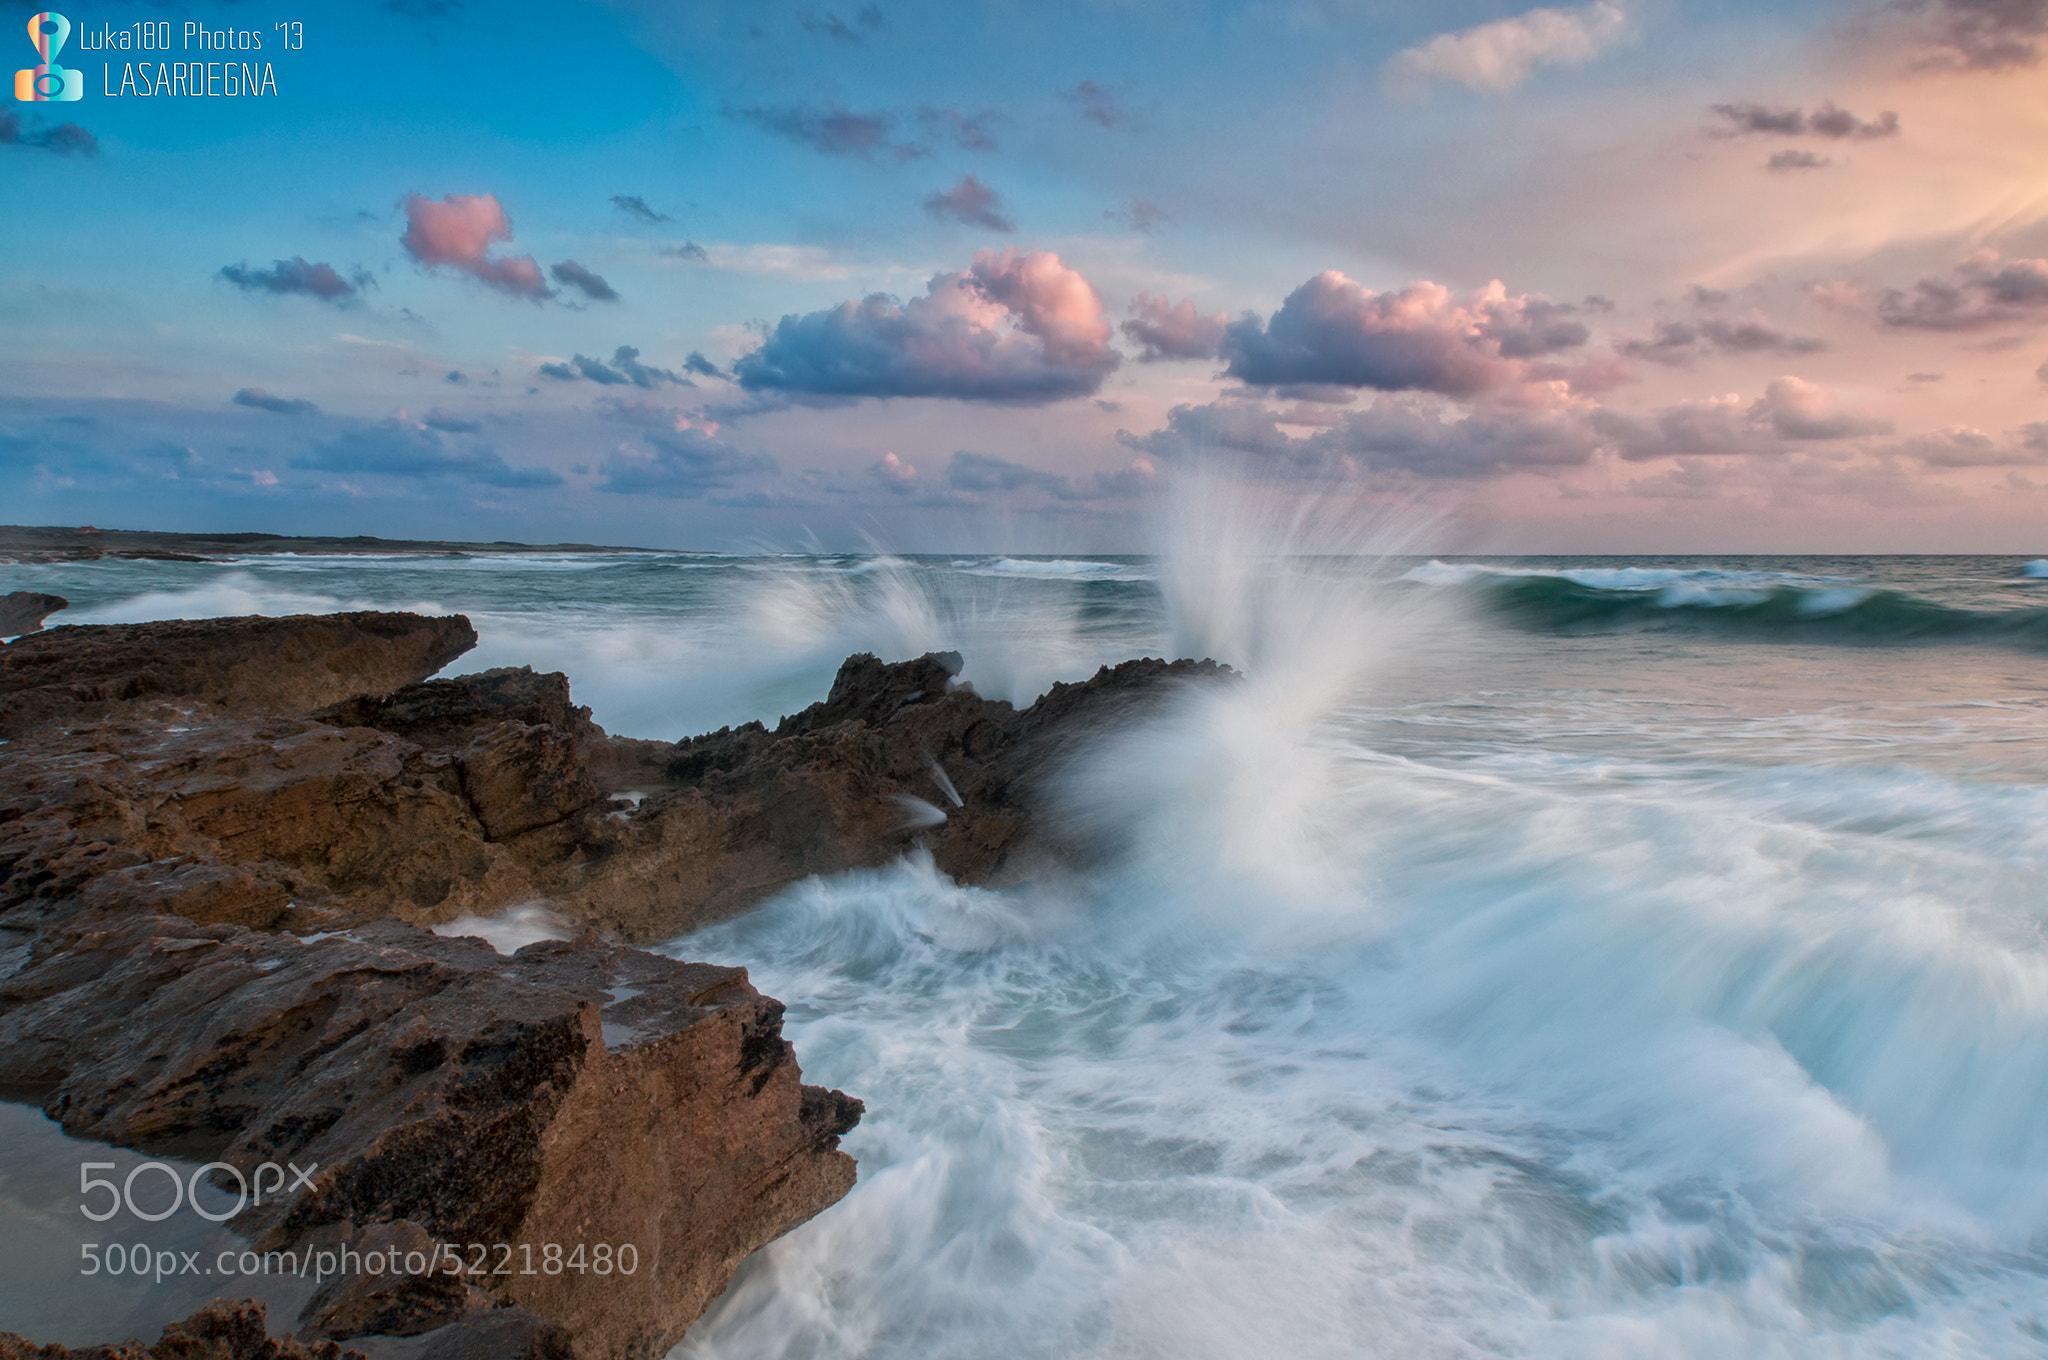 Photograph The wave by Luka180 S. on 500px